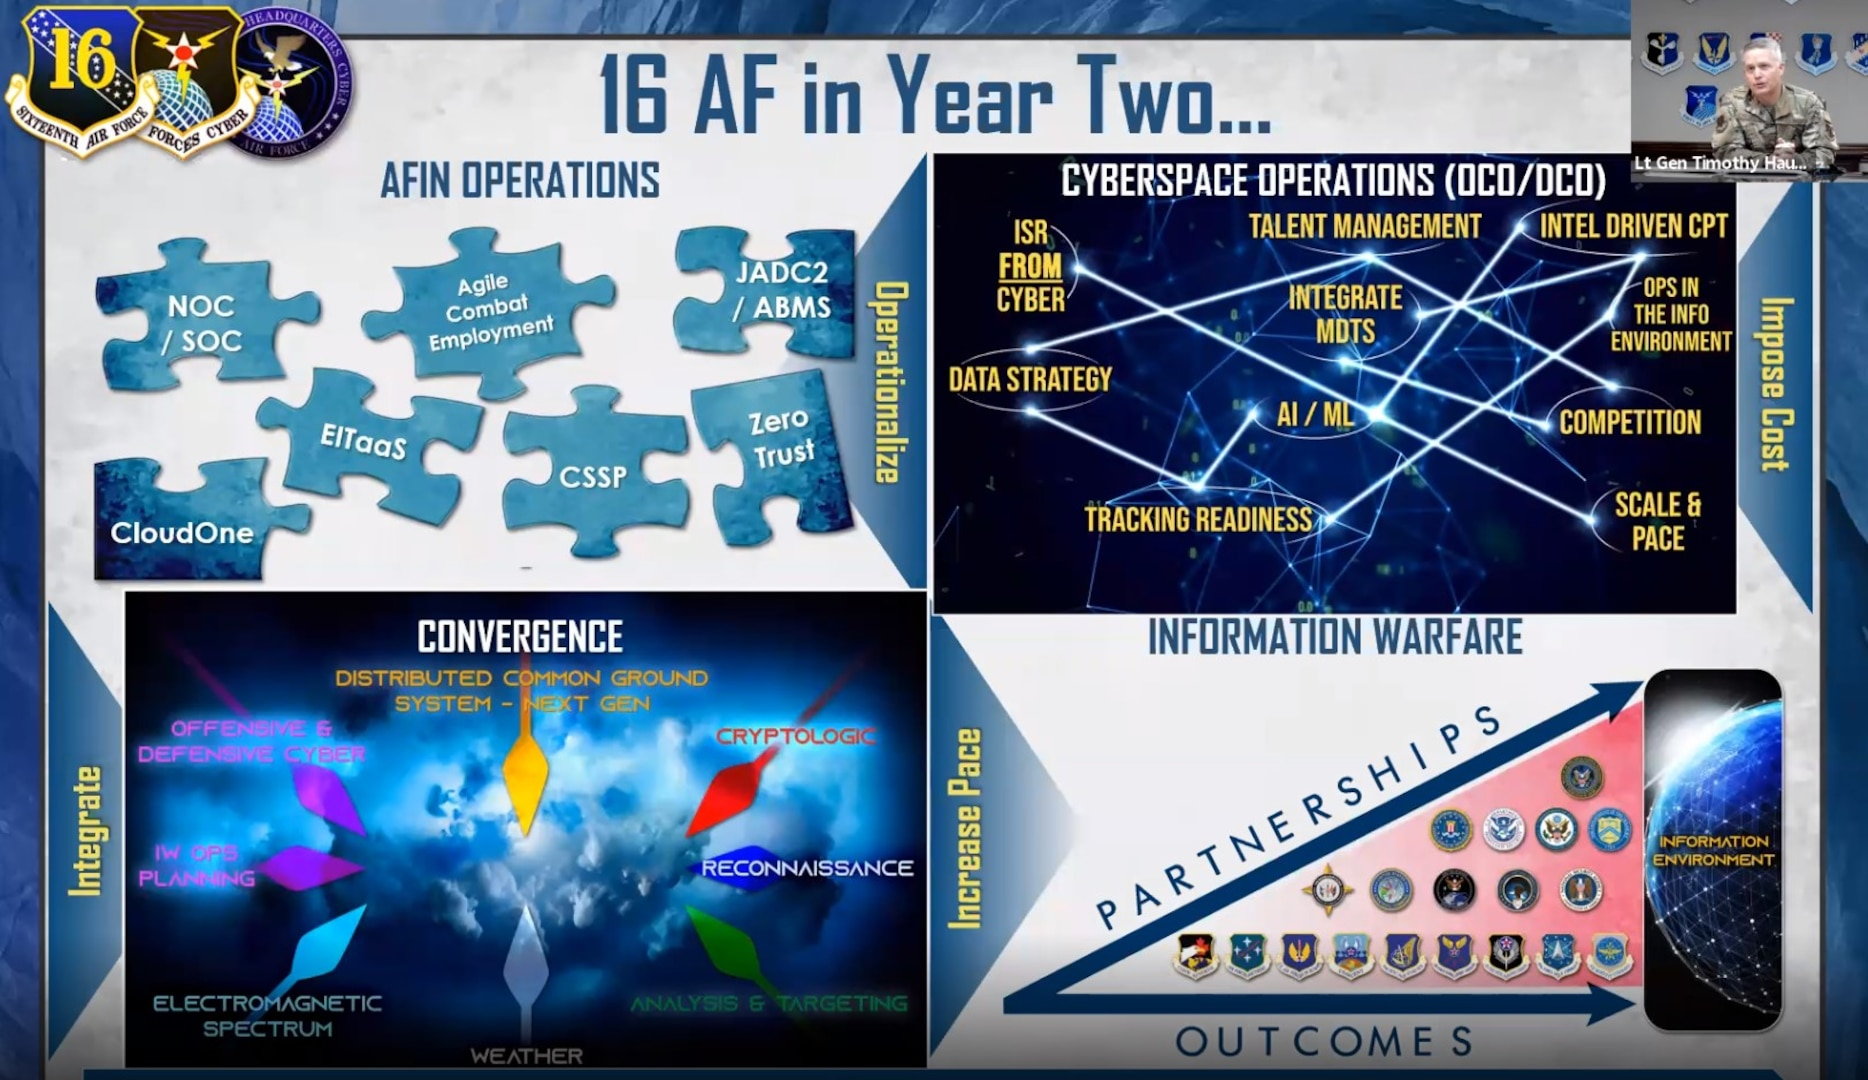 On Nov. 18, 2020, JBSA's mission partner commander, Lt. Gen. Timothy Haugh, Sixteenth Air Force (Air Forces Cyber), spoke to virtual attendees at Alamo ACE about the progress the new Numbered Air Force has made in its first year and what lies ahead.